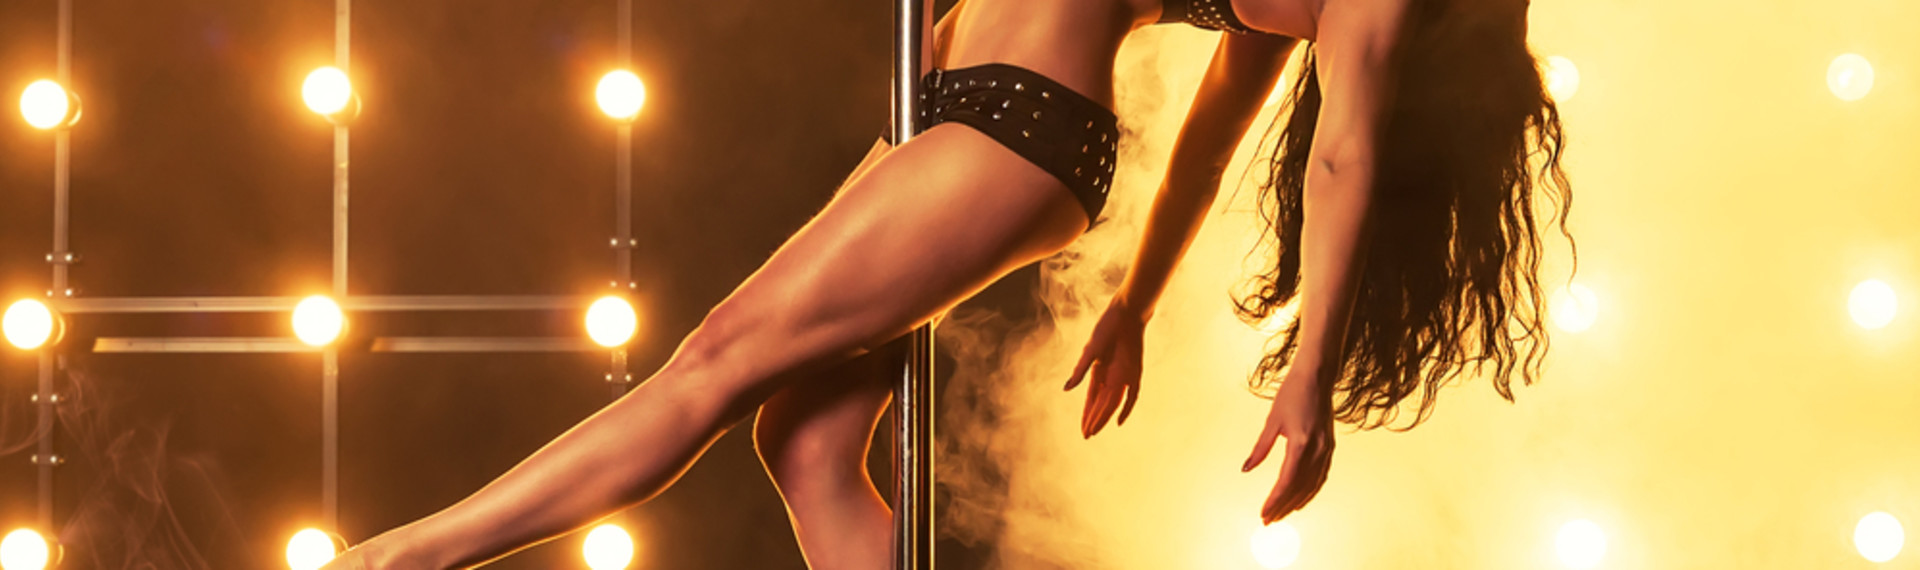 Stripperin in Amsterdam | Sexy Entertainment für euren JGA | Pissup Reisen